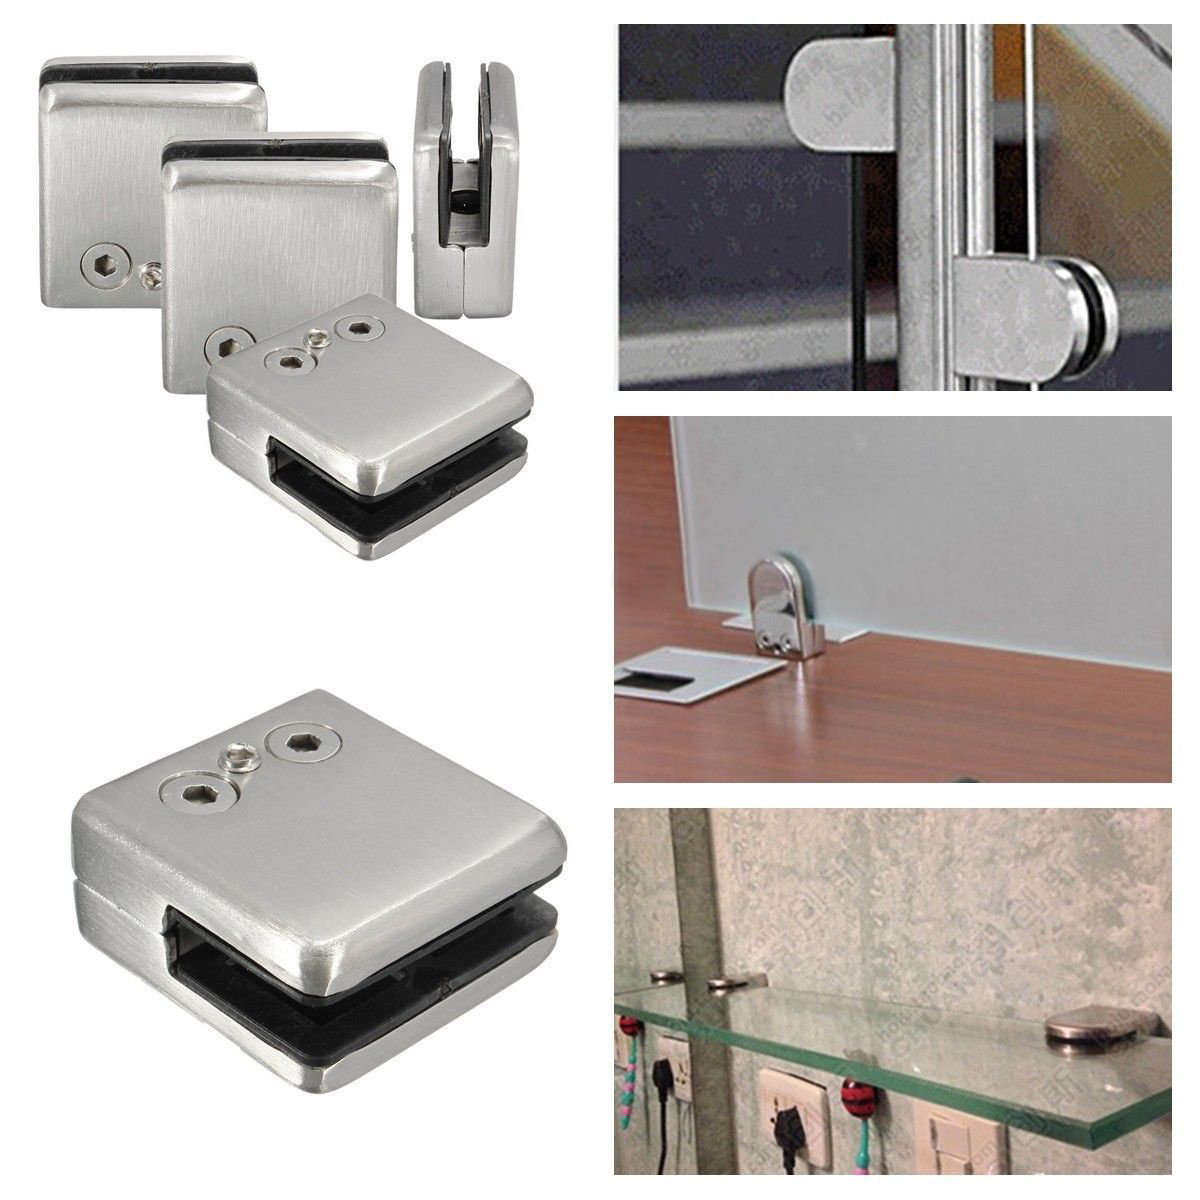 Hot Sale 4Pcs Stainless Steel Square Clamp Holder Bracket Clip For Glass Shelf Handrails Silver